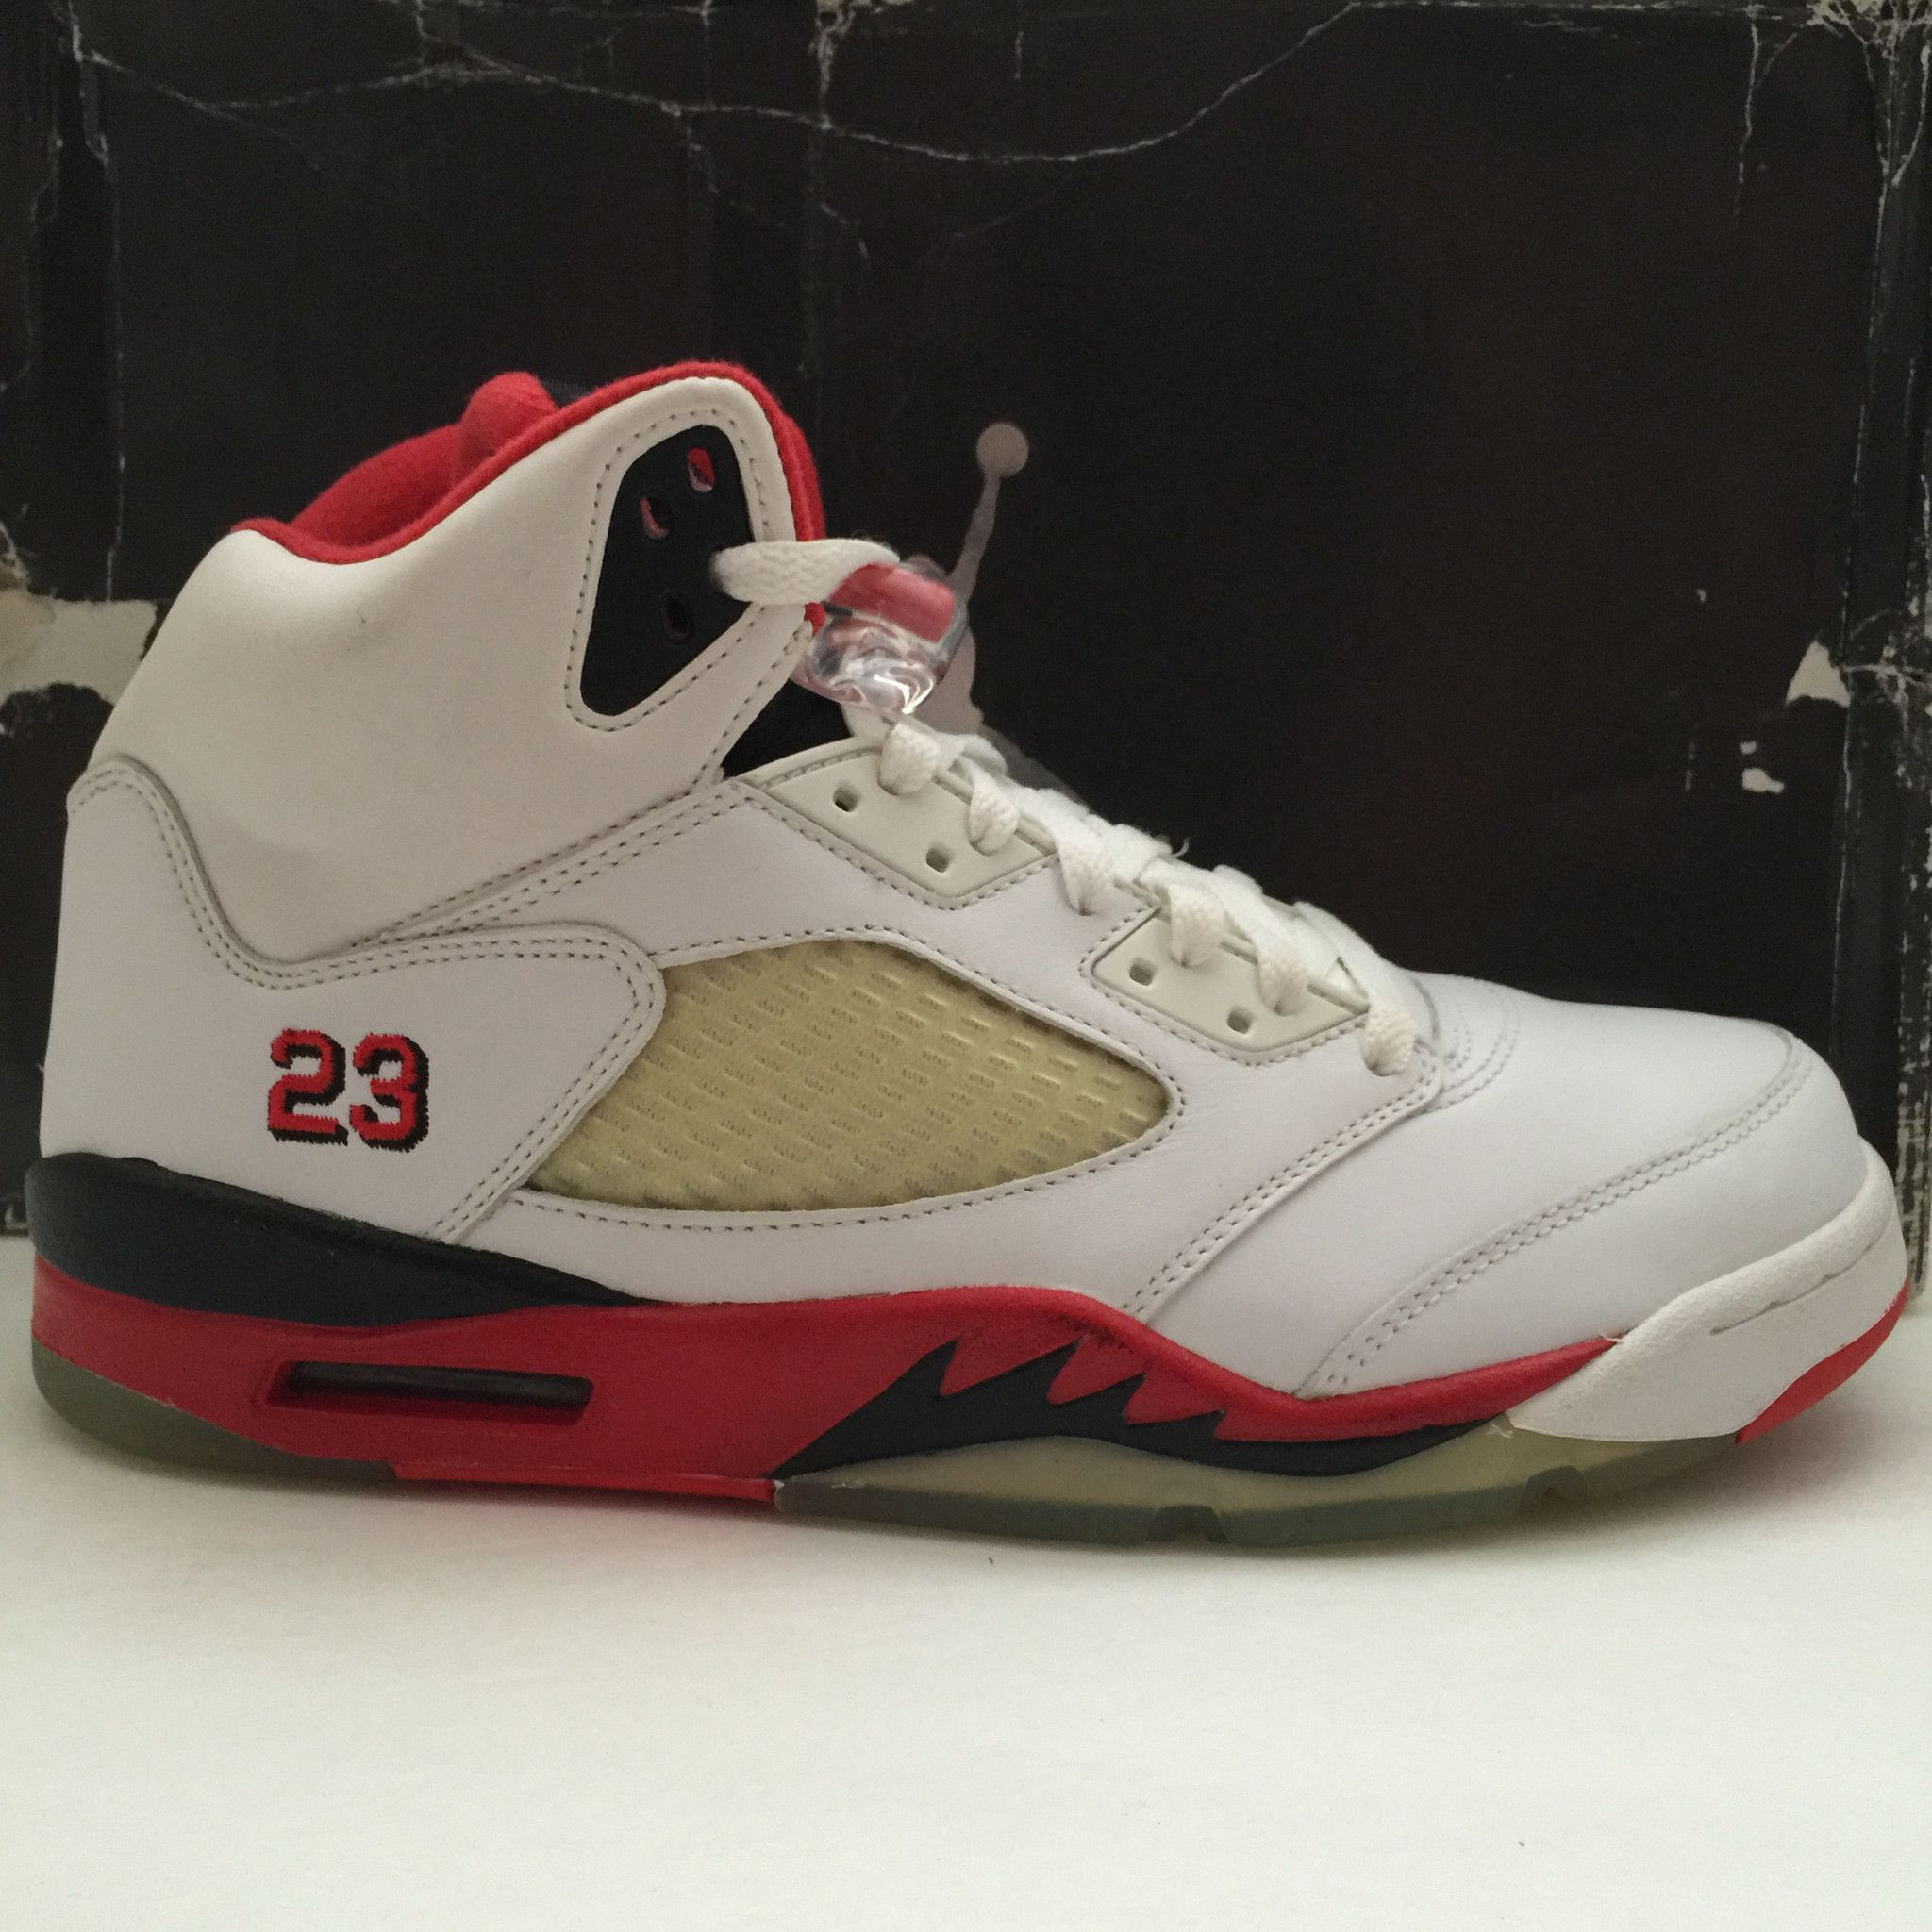 274db893862 ... Name : Nike Air Jordan 5 Retro Size (US) : 10 Condition : New | DS 2006  | With box Style Code : 136027 162 Year : 2006 Color : White/Fire Red-Black